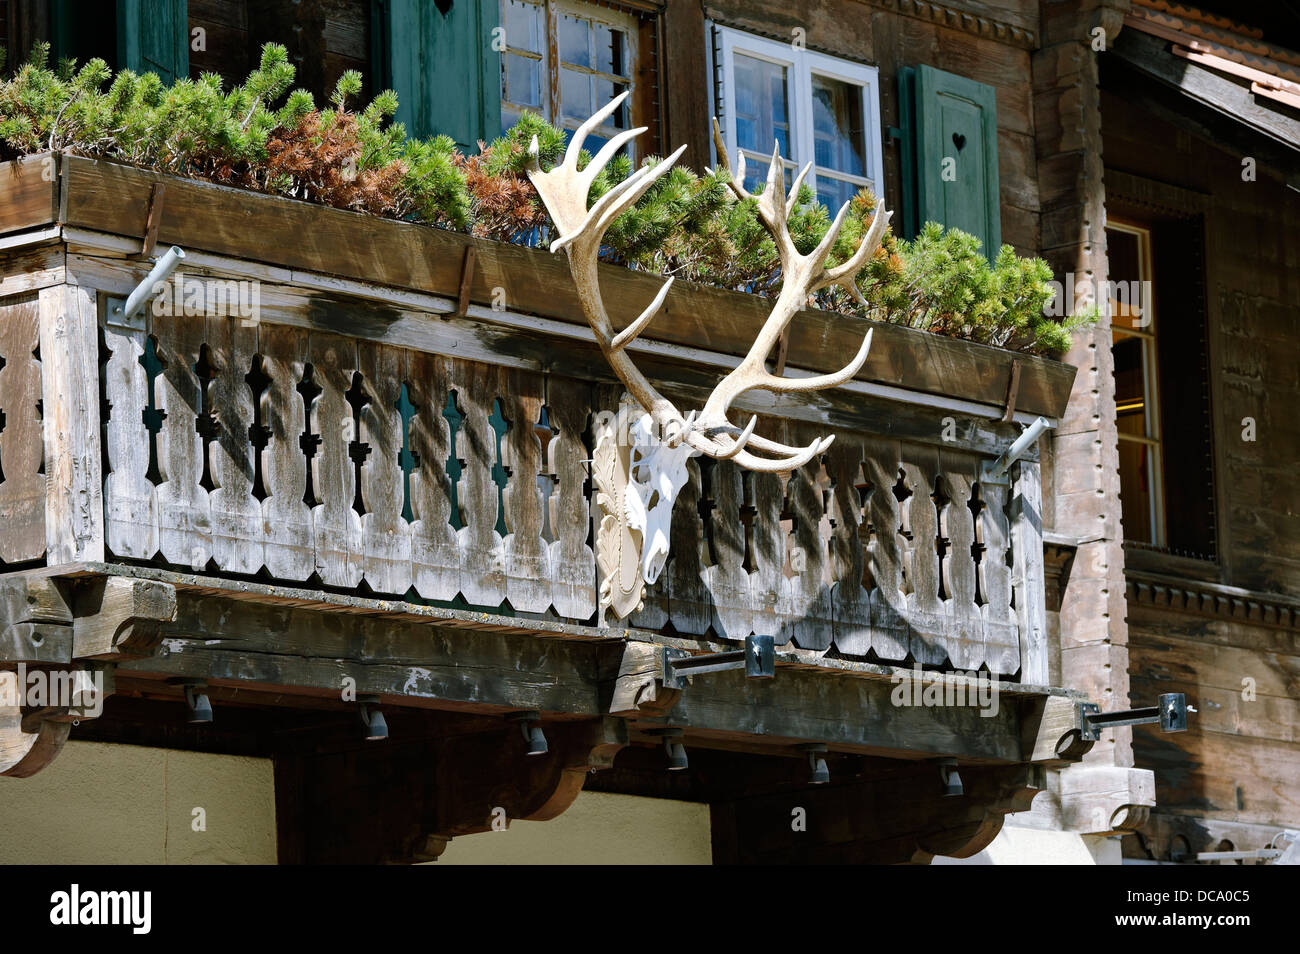 Antlers on the railings of a balcony - Stock Image